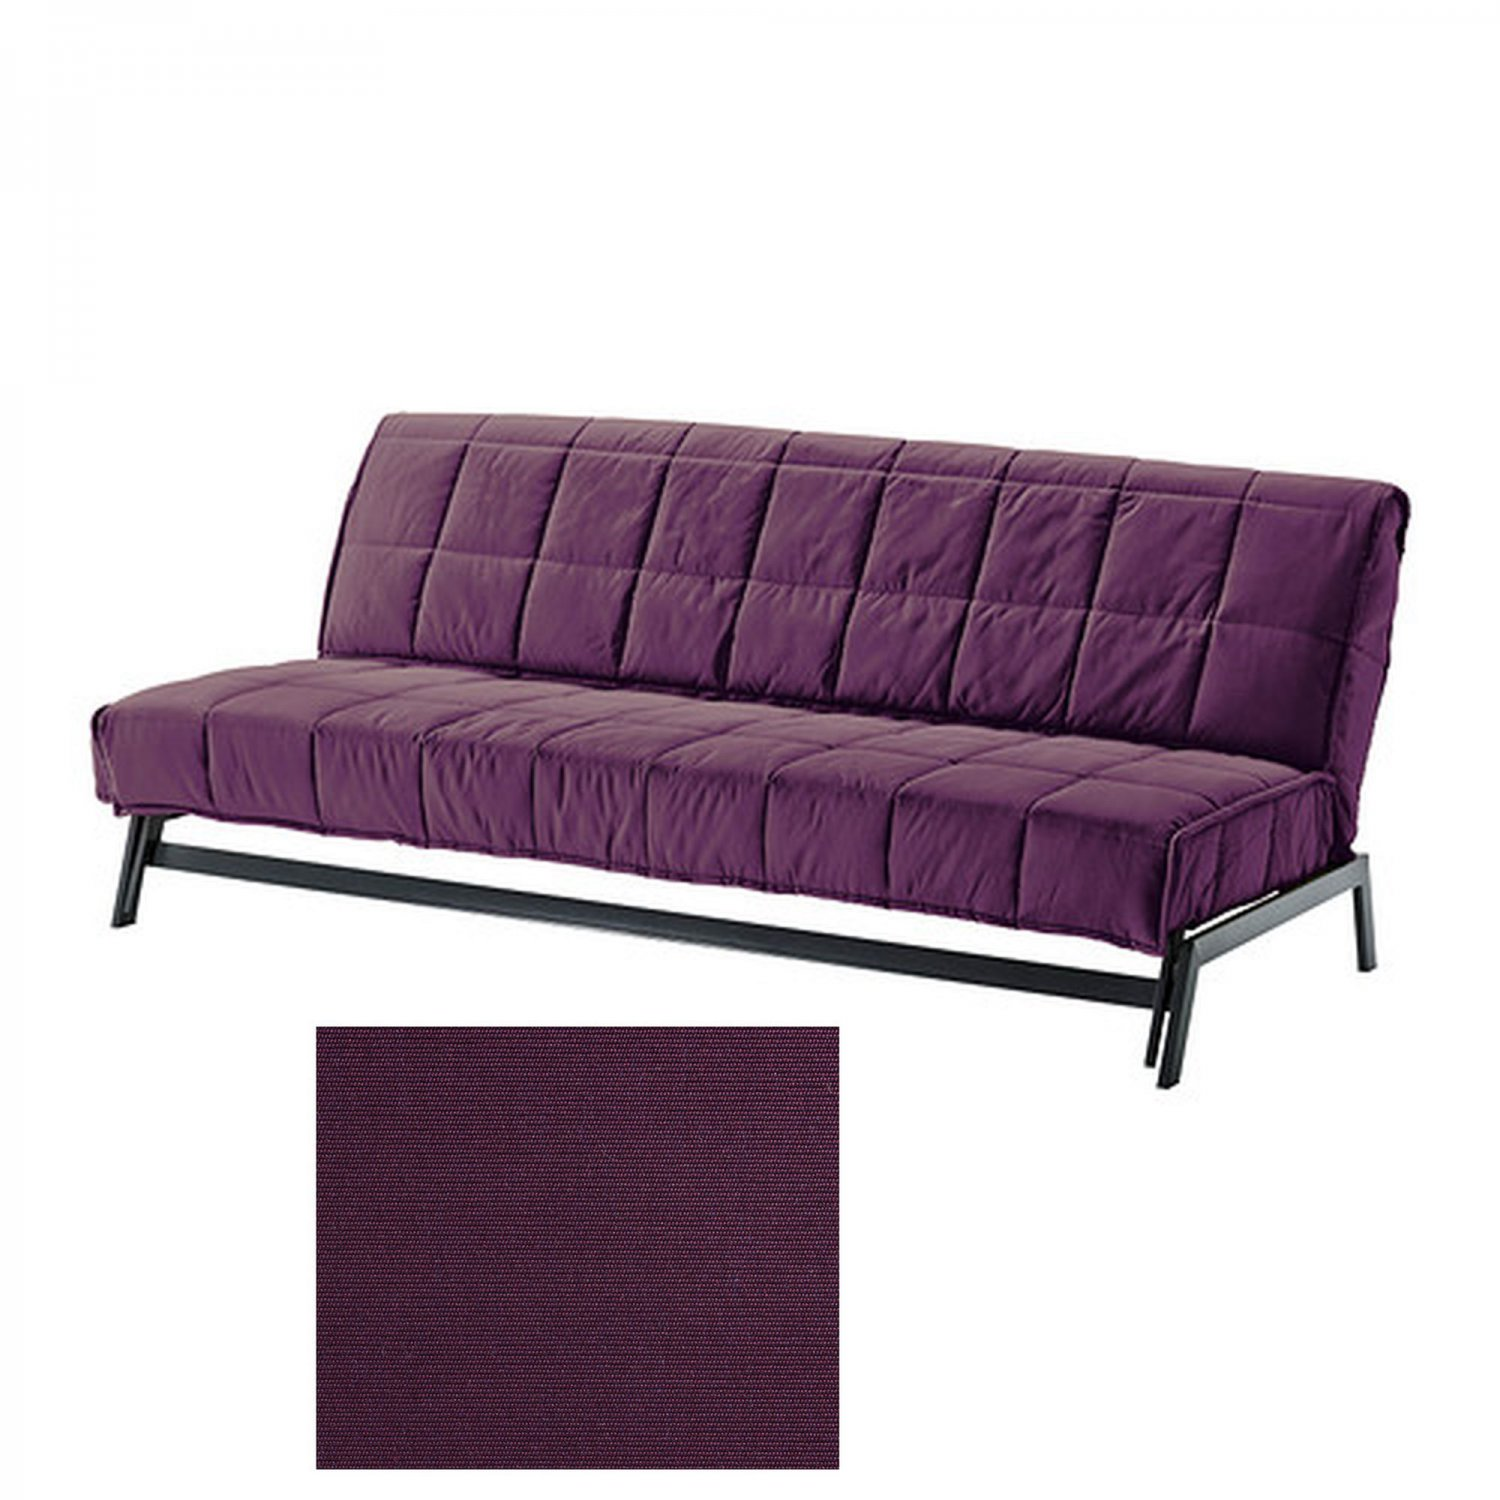 Purple sofa ikea ypperlig 2 seat sofa gr sbo black blue for Purple sofa